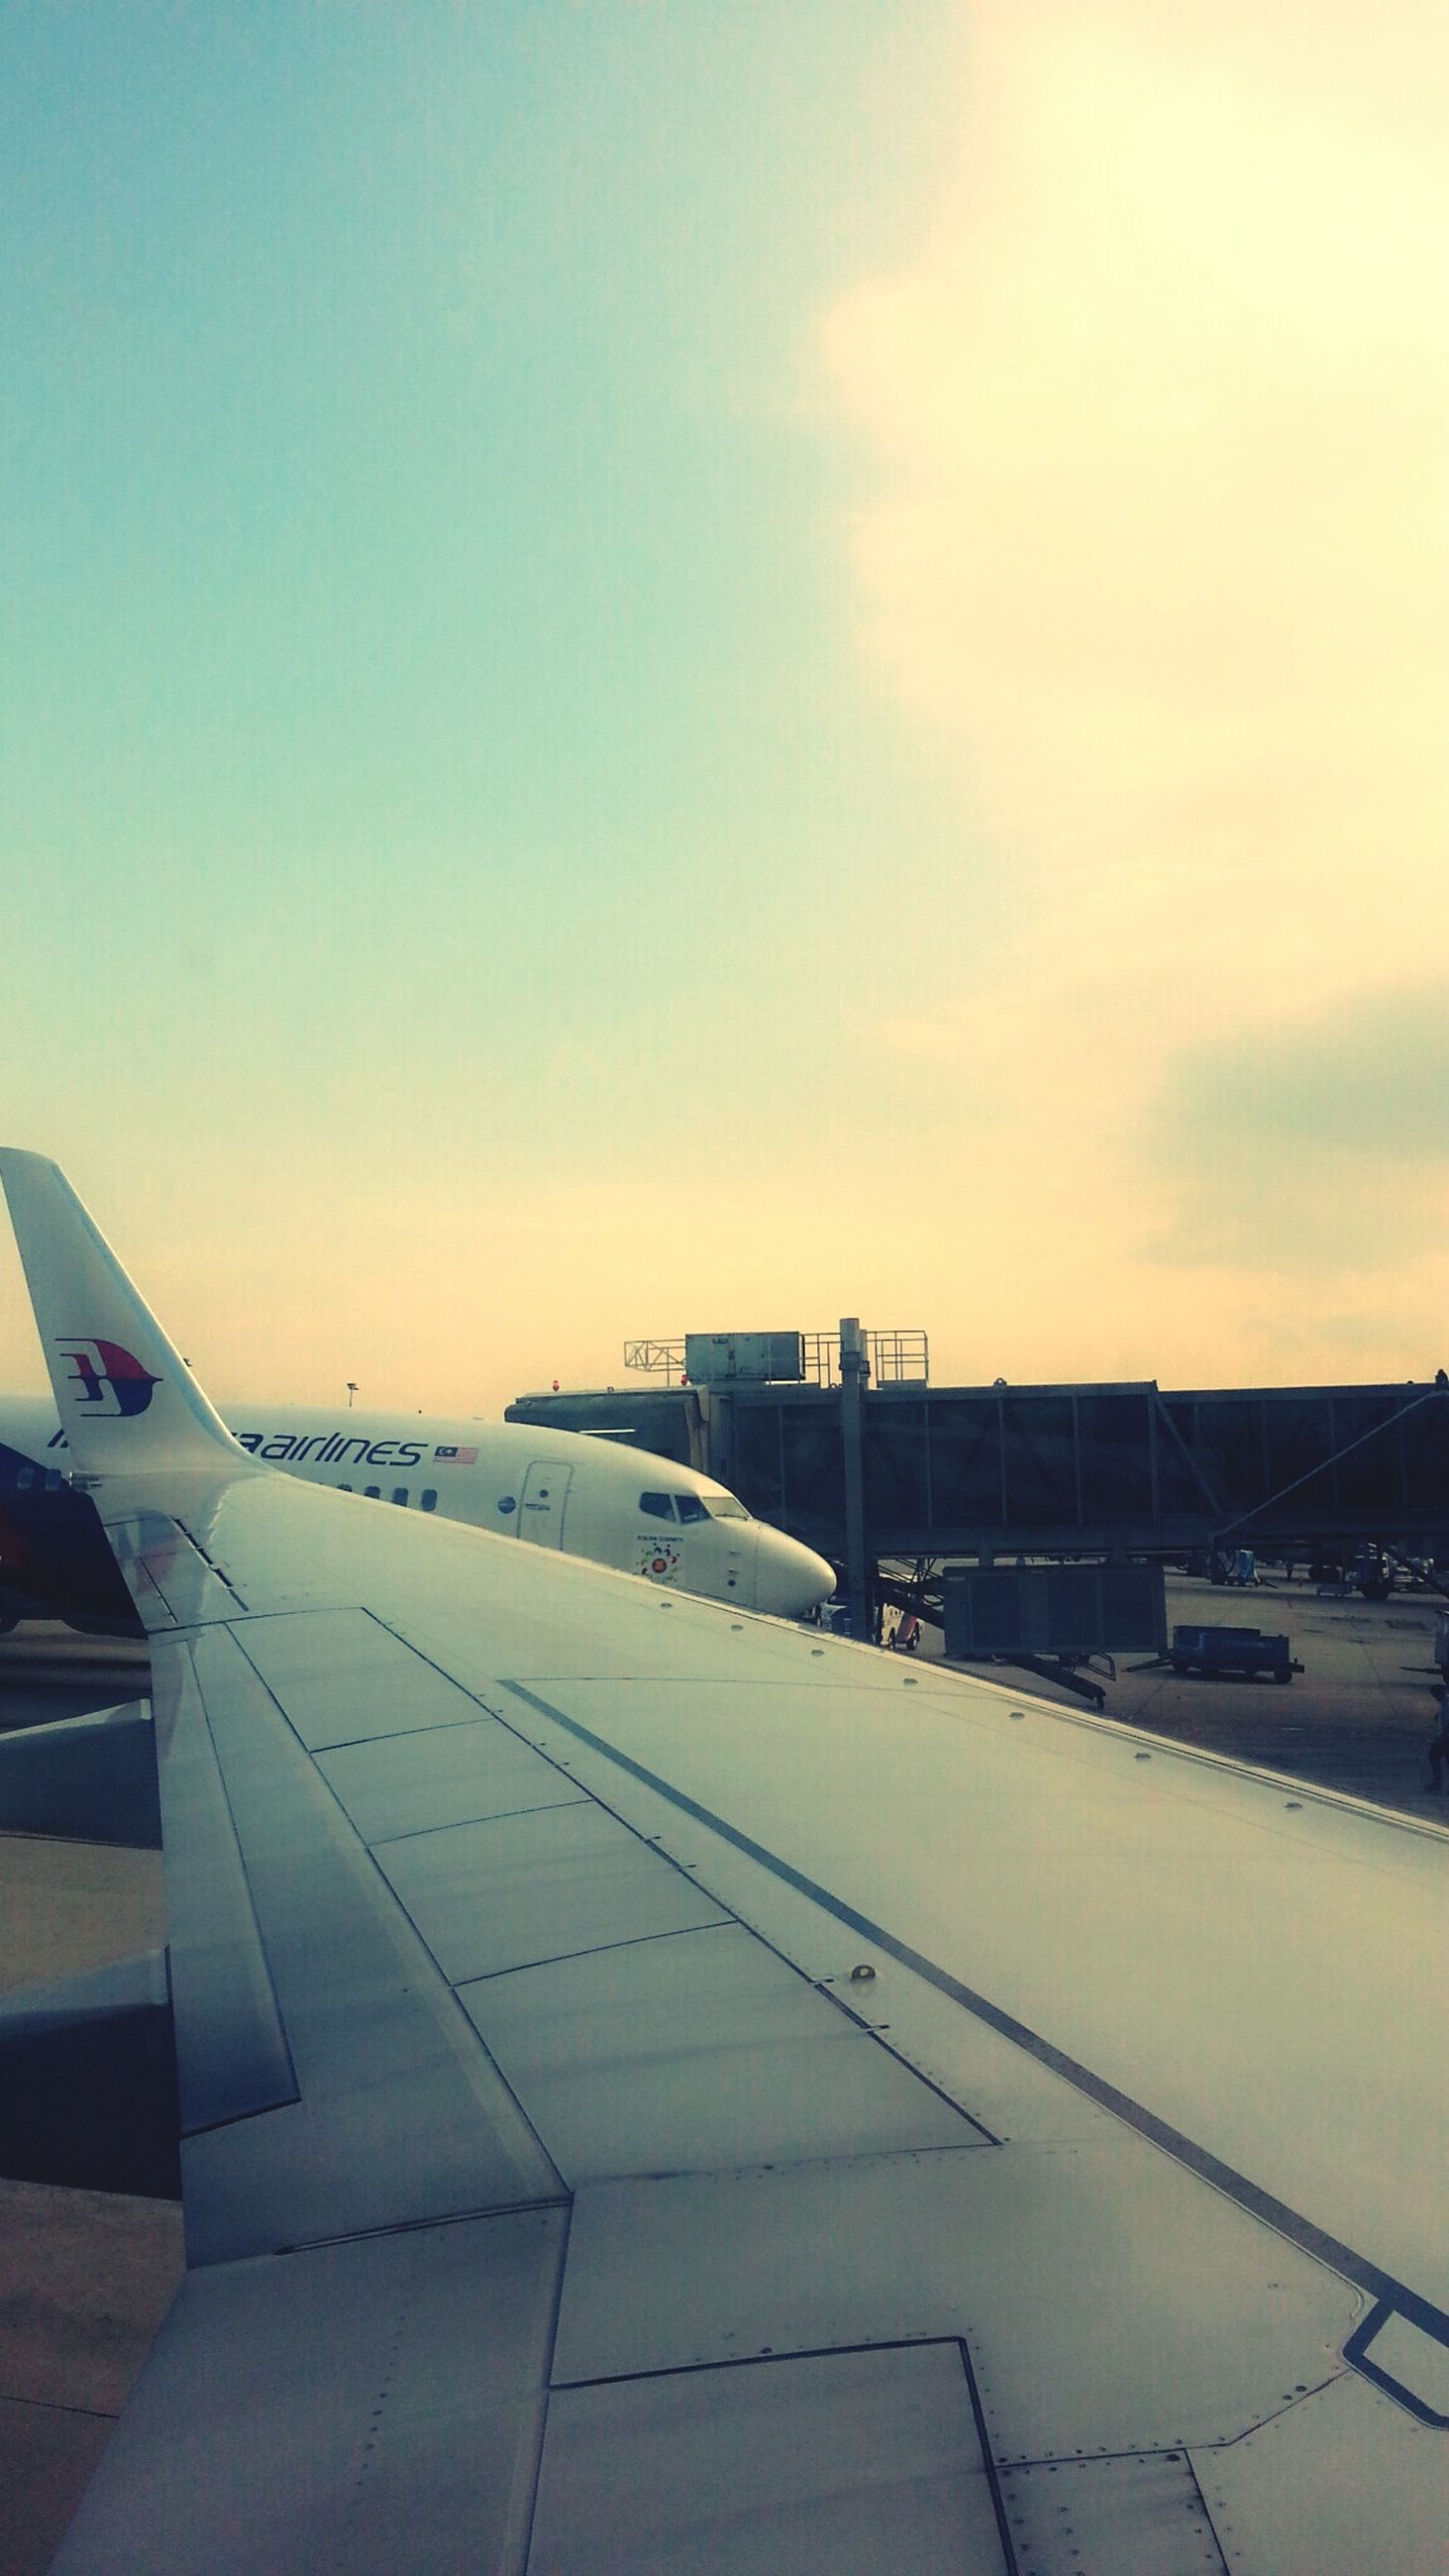 transportation, mode of transport, airplane, sky, aircraft wing, air vehicle, cropped, sunset, public transportation, flying, travel, sea, part of, cloud - sky, nature, journey, outdoors, no people, built structure, scenics